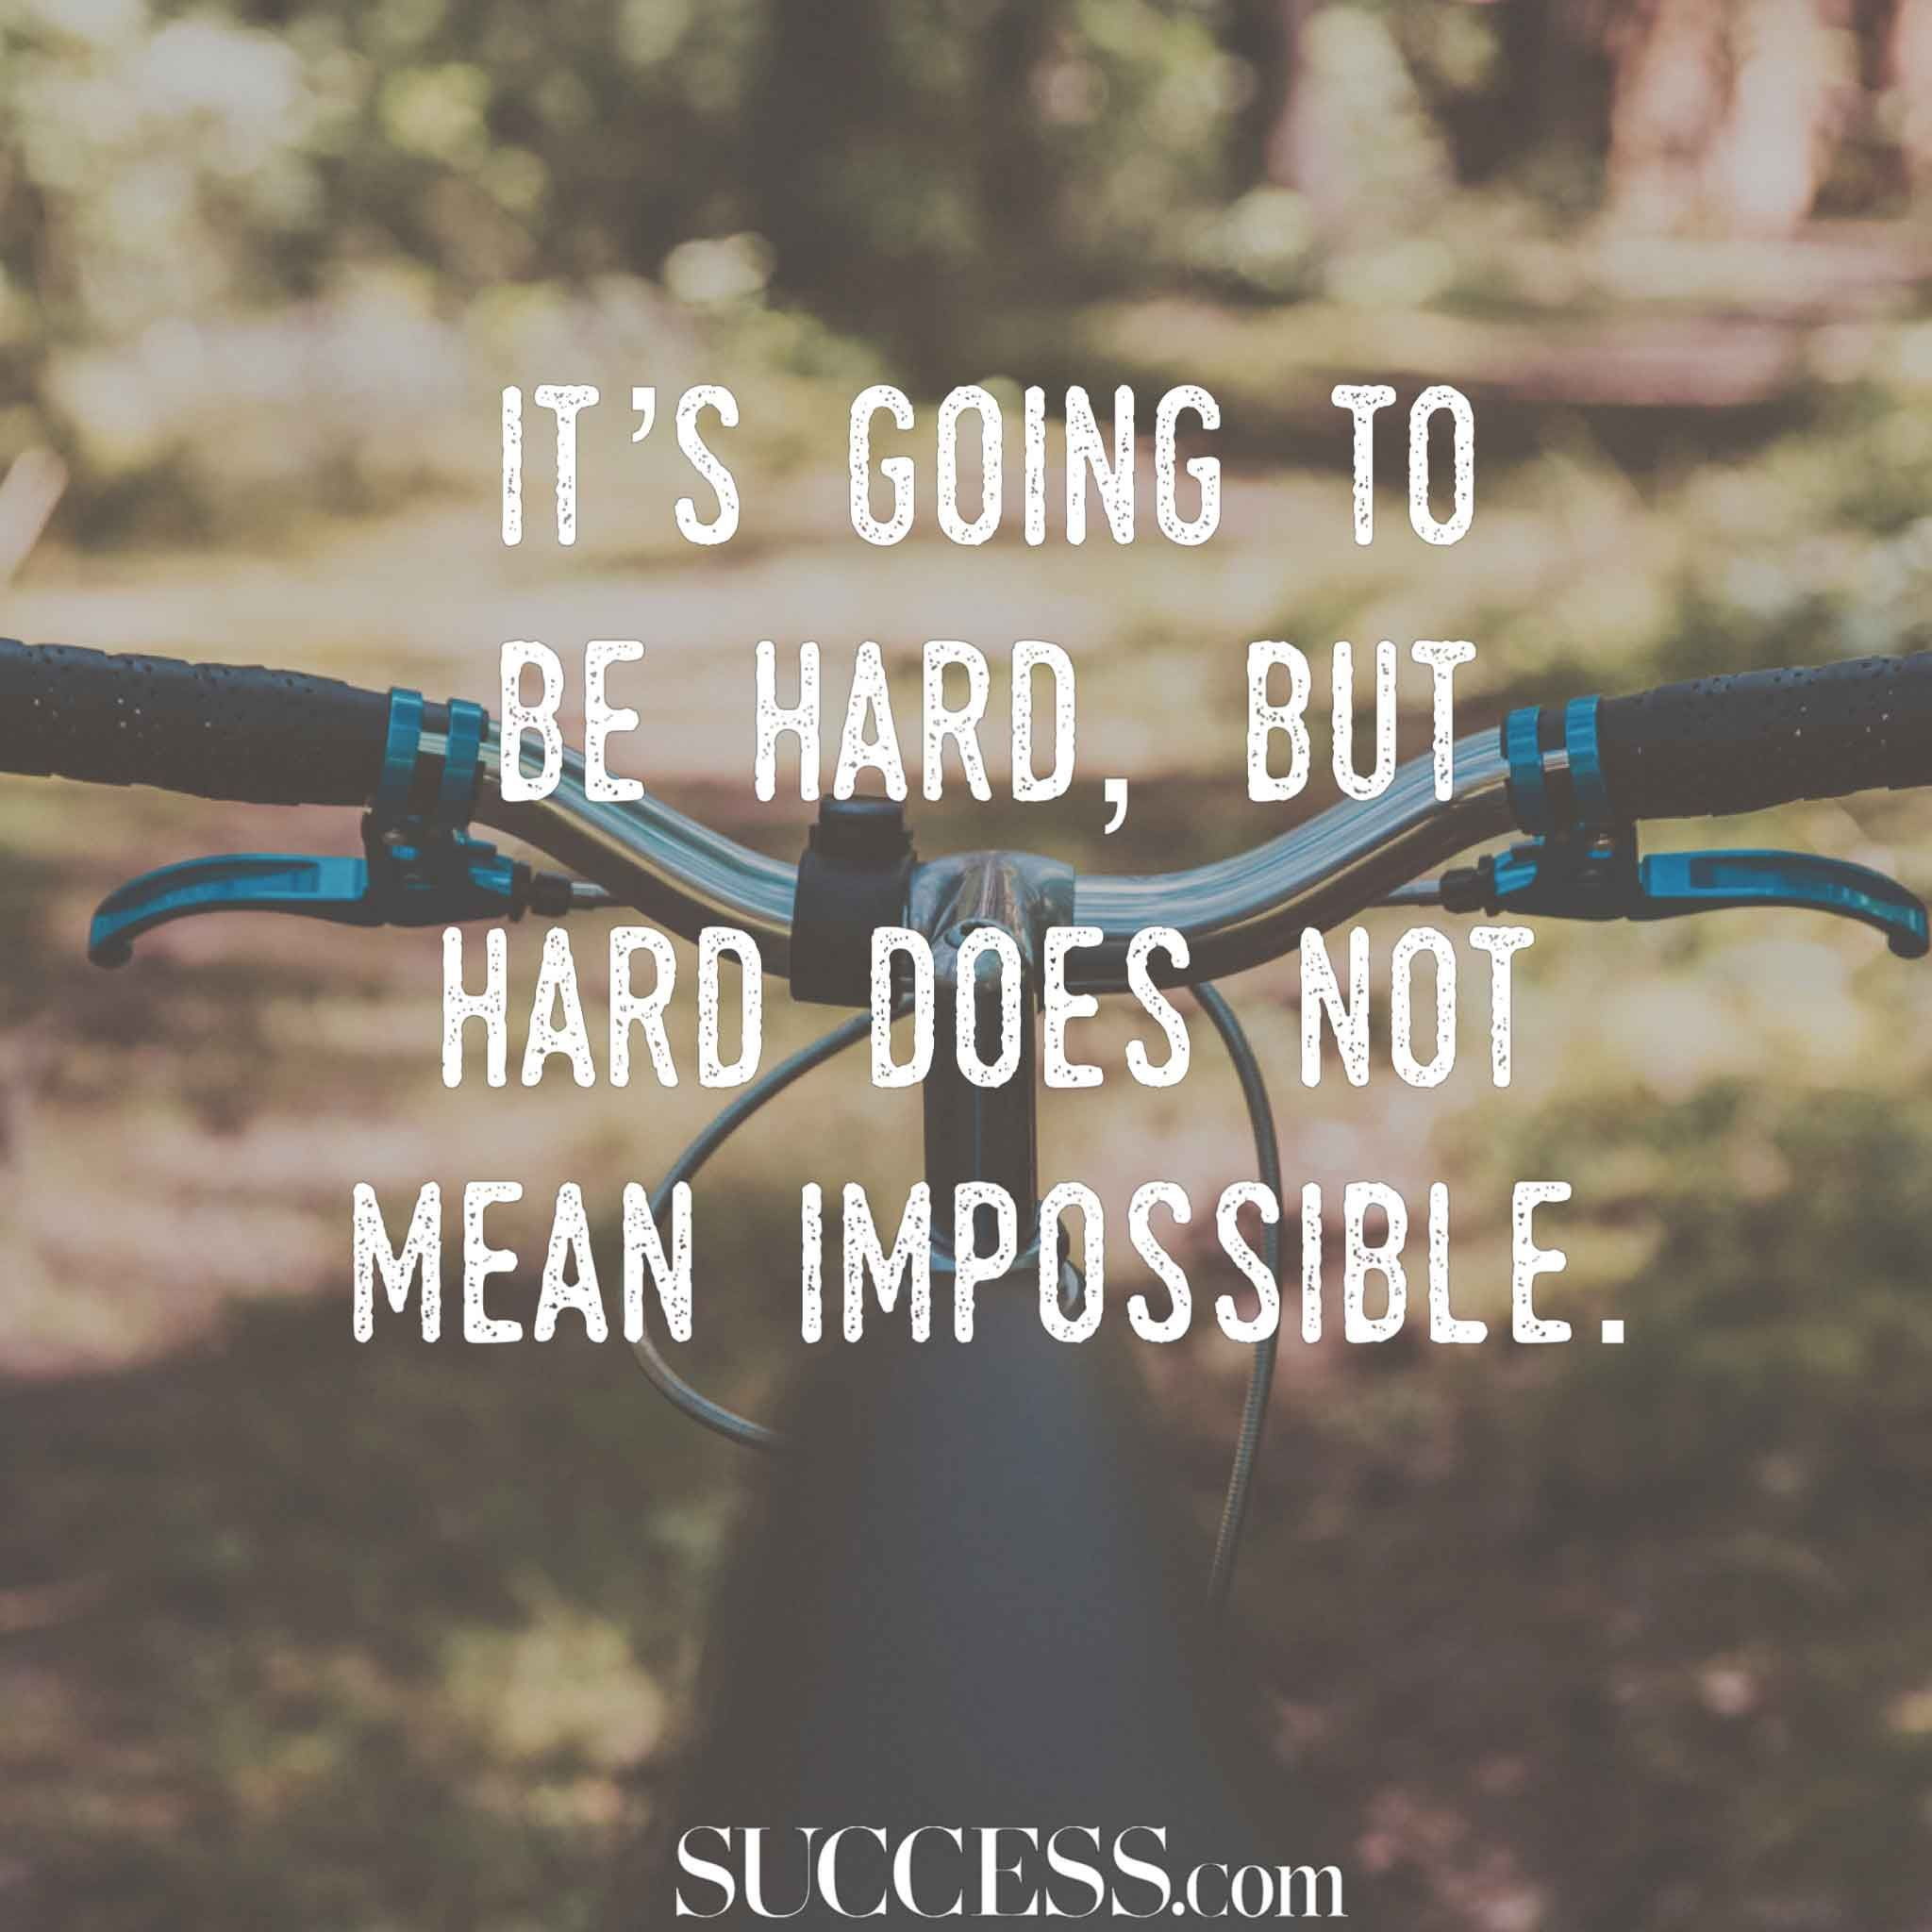 Inspirational Quotes About Success 17 Motivational Quotes To Inspire You To Be Successful